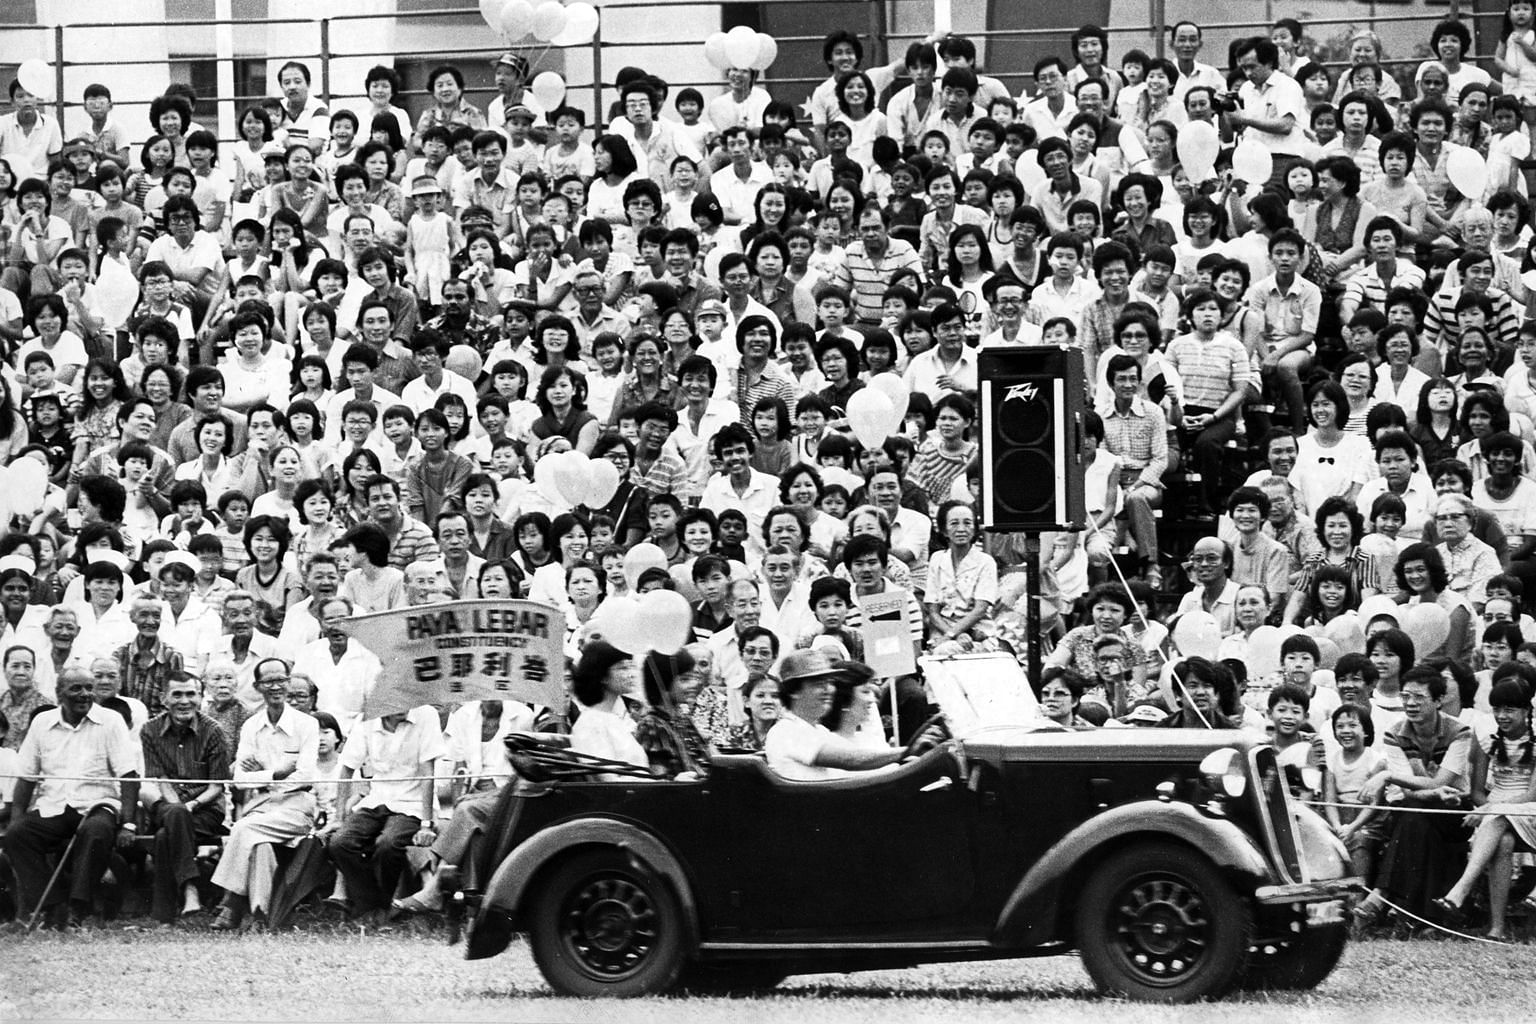 A contingent bearing a model of the MRT, a symbol of progress, at the parade in 1985. The massive transport project, green-lighted by the Government in 1982 after years of study, began operations in November 1987. Above: A vintage Austin 7 chugging p